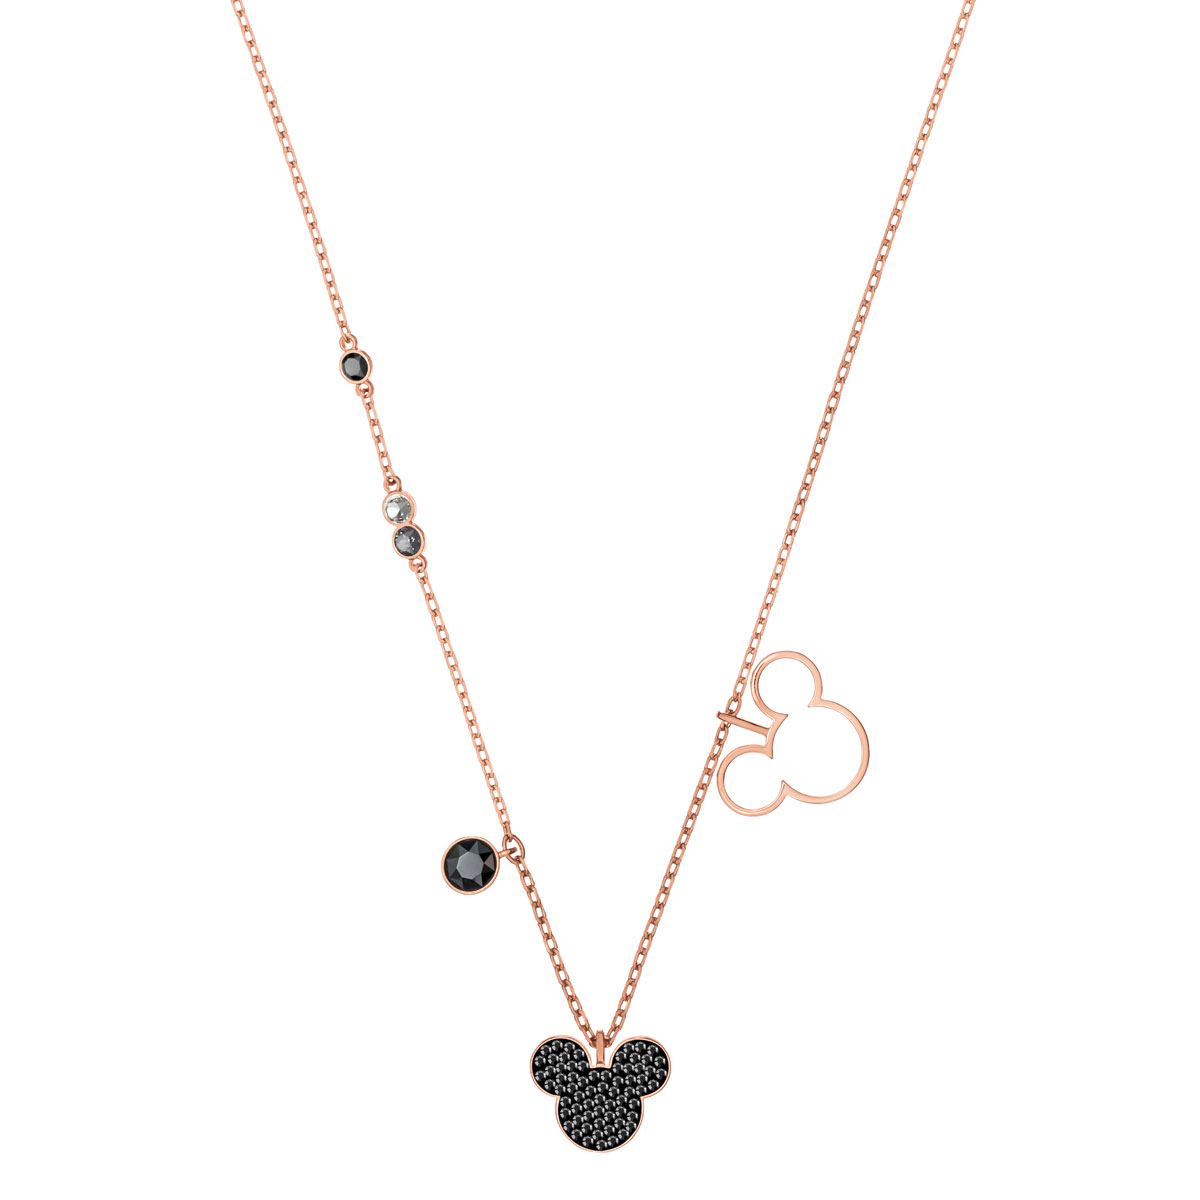 Swarovski Disney Mickey And Minnie Multi Colored Rose Gold Pendant Necklace With Regard To Most Up To Date Disney Classic Mickey Pendant Necklaces (View 24 of 25)